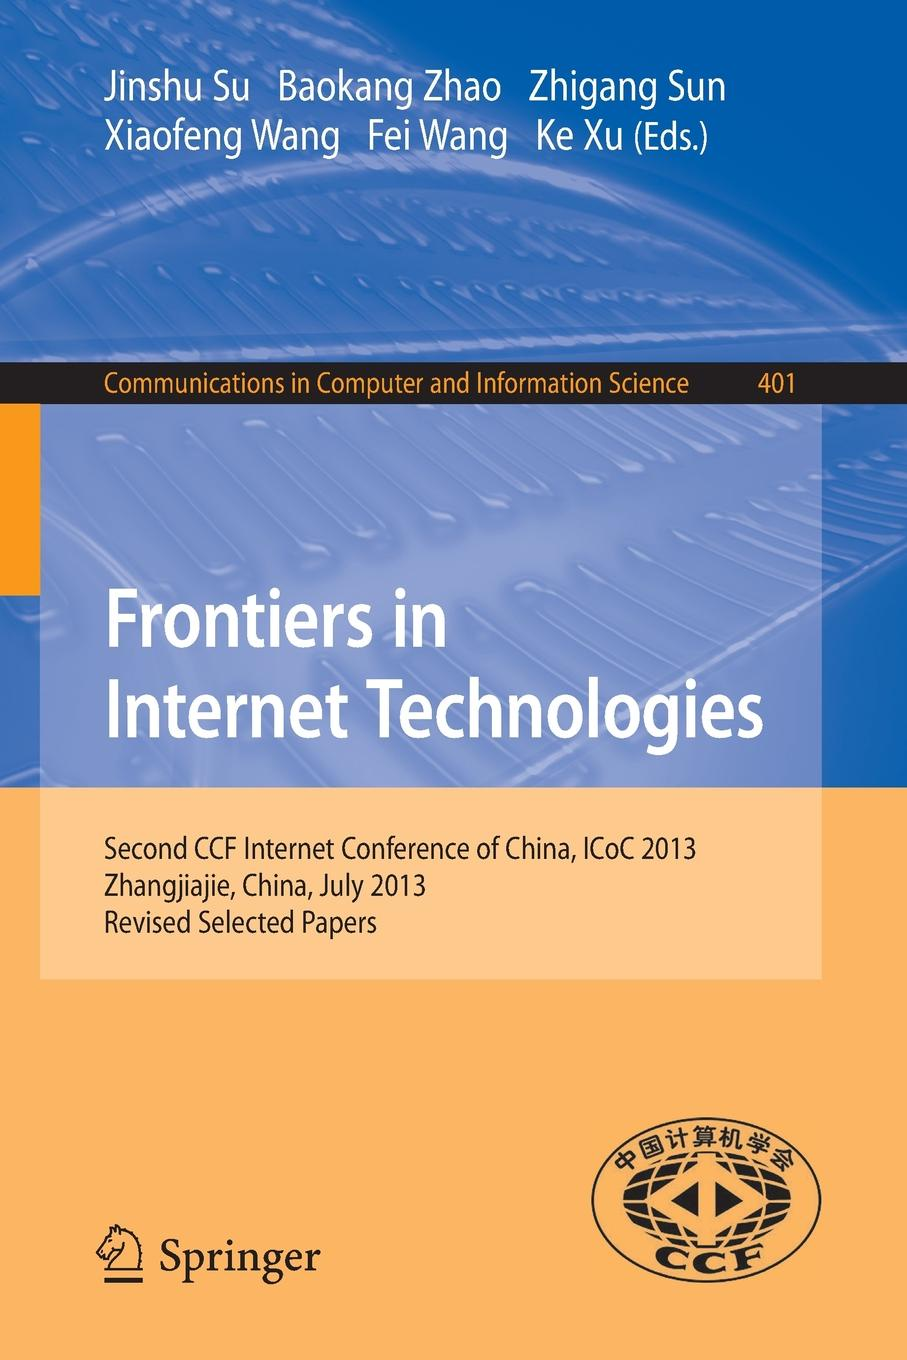 Frontiers in Internet Technologies. Second CCF Internet Conference of China, ICoC 2013, Zhangjiajie, China. Revised Selected Papers shelby zach 6lowpan the wireless embedded internet